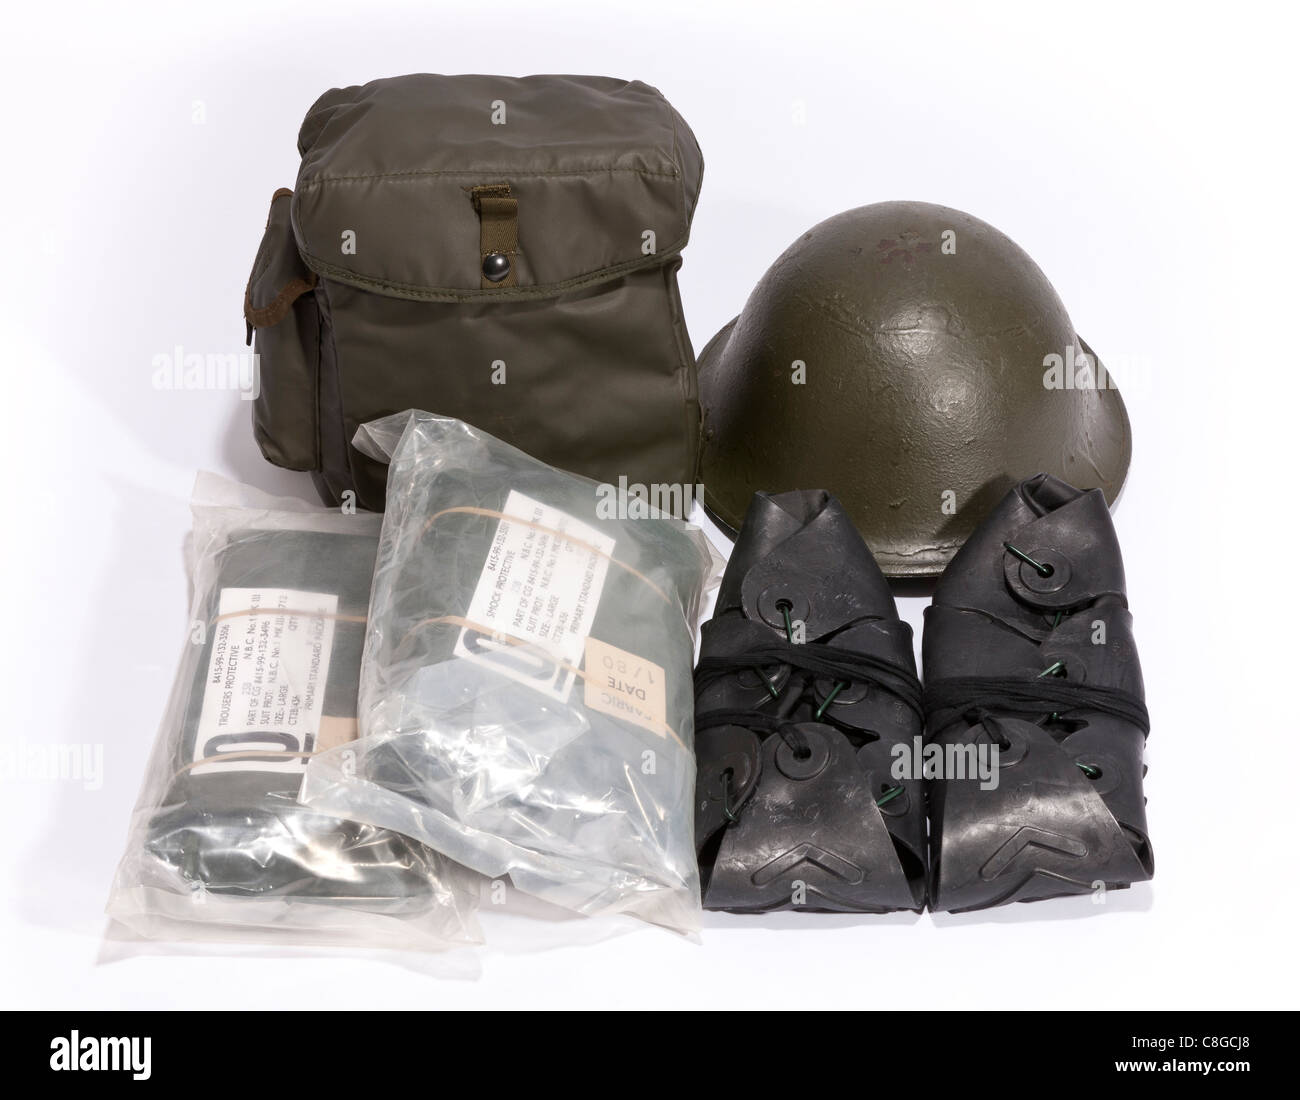 A British Military NBC kit from the 1980's - Stock Image